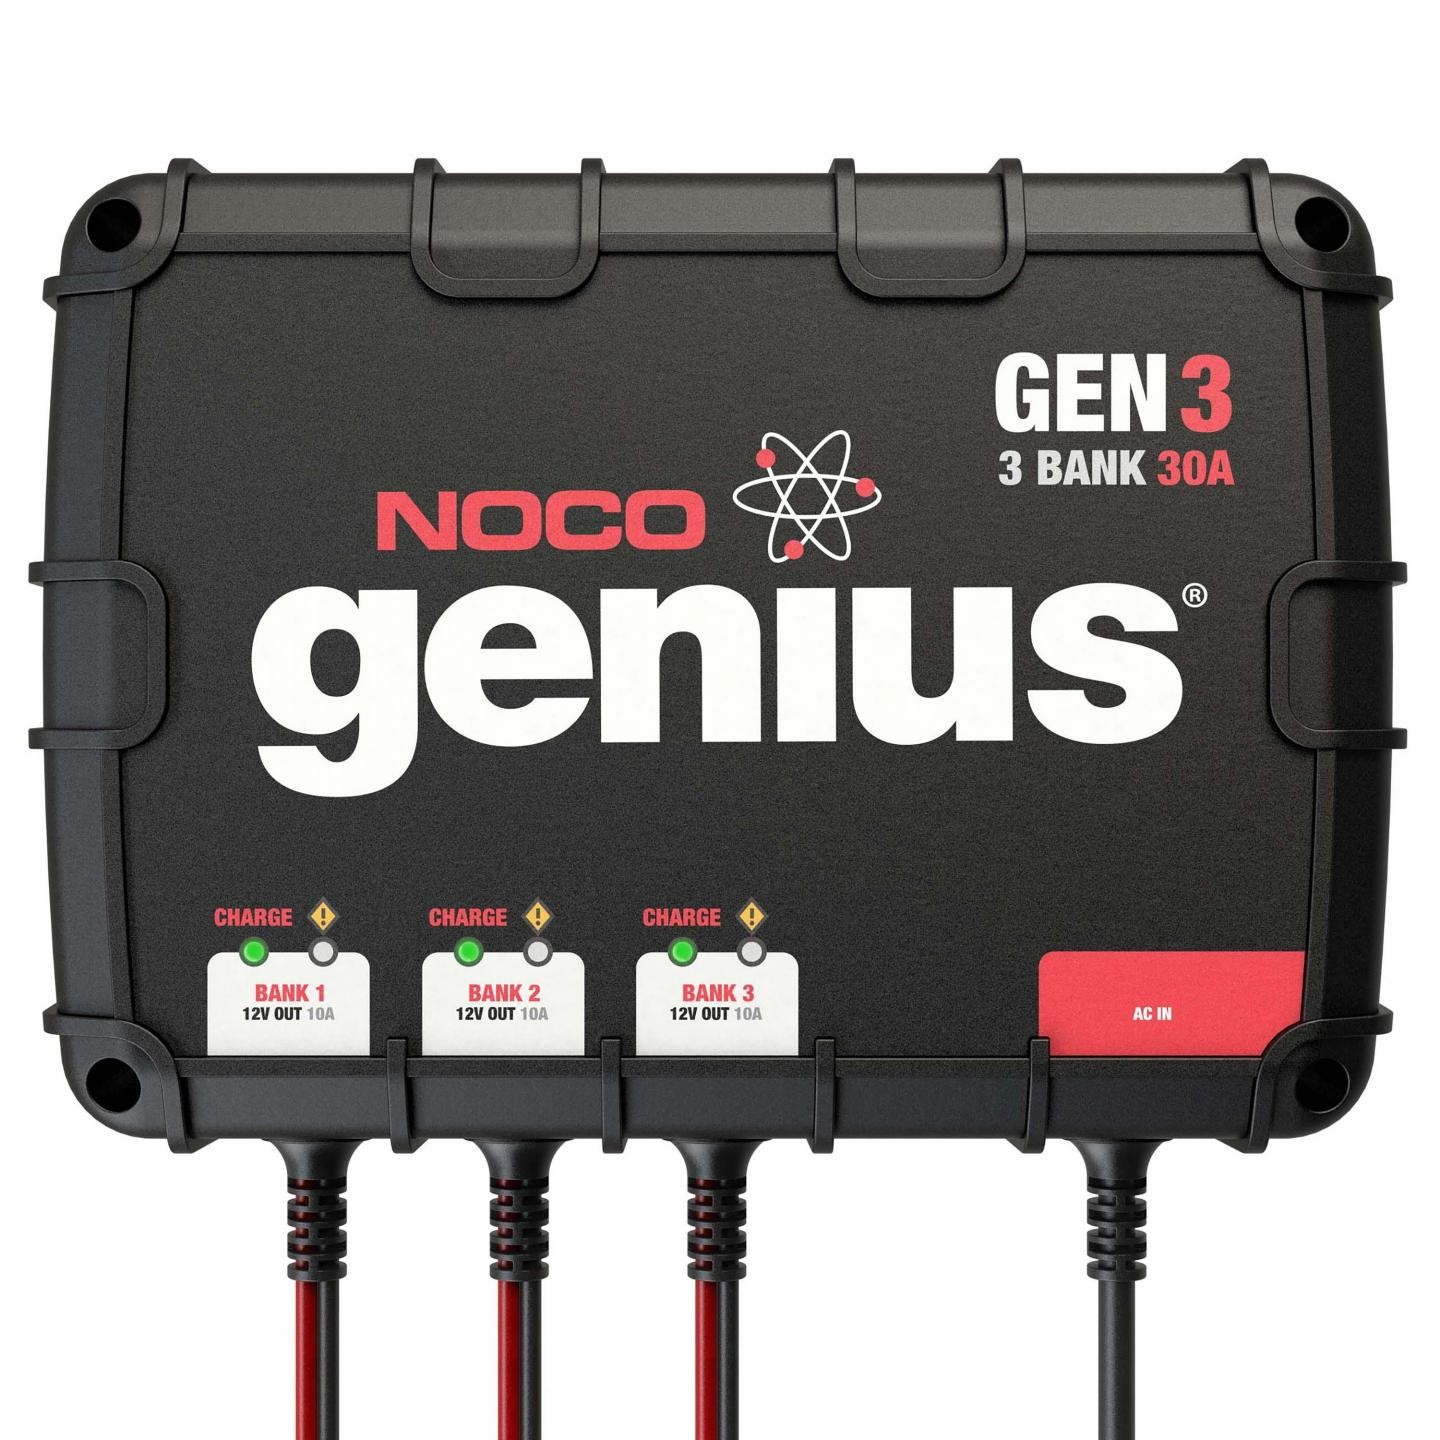 noco - 3-bank 30a on-board battery charger